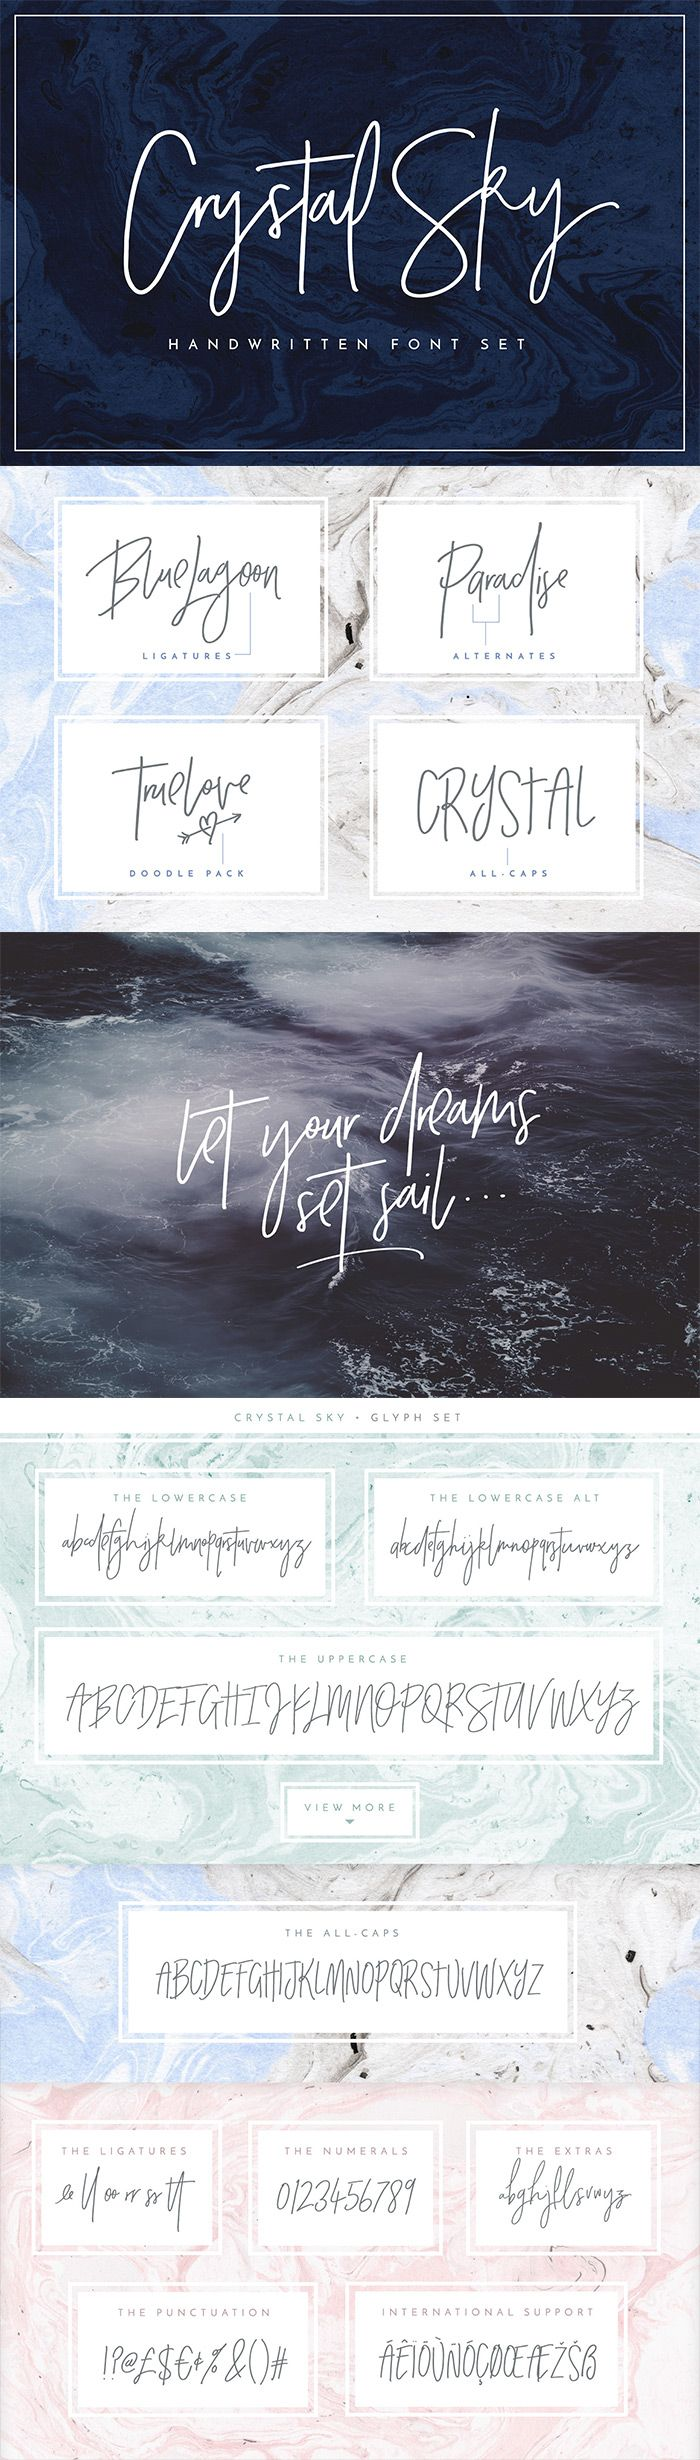 Add a little sparkle to your designs with Crystal Sky! A clean & classy signature-style font set, perfect for creating authentic hand-lettered text quickly & easily.  With exaggerated strokes and an extra bouncy baseline, Crystal Sky has an unmistakable charm; perfect for logos, headers, company or personal branding, product packaging, cards & handwritten quotes. Includes glyphs, alternates and a vector doodle pack